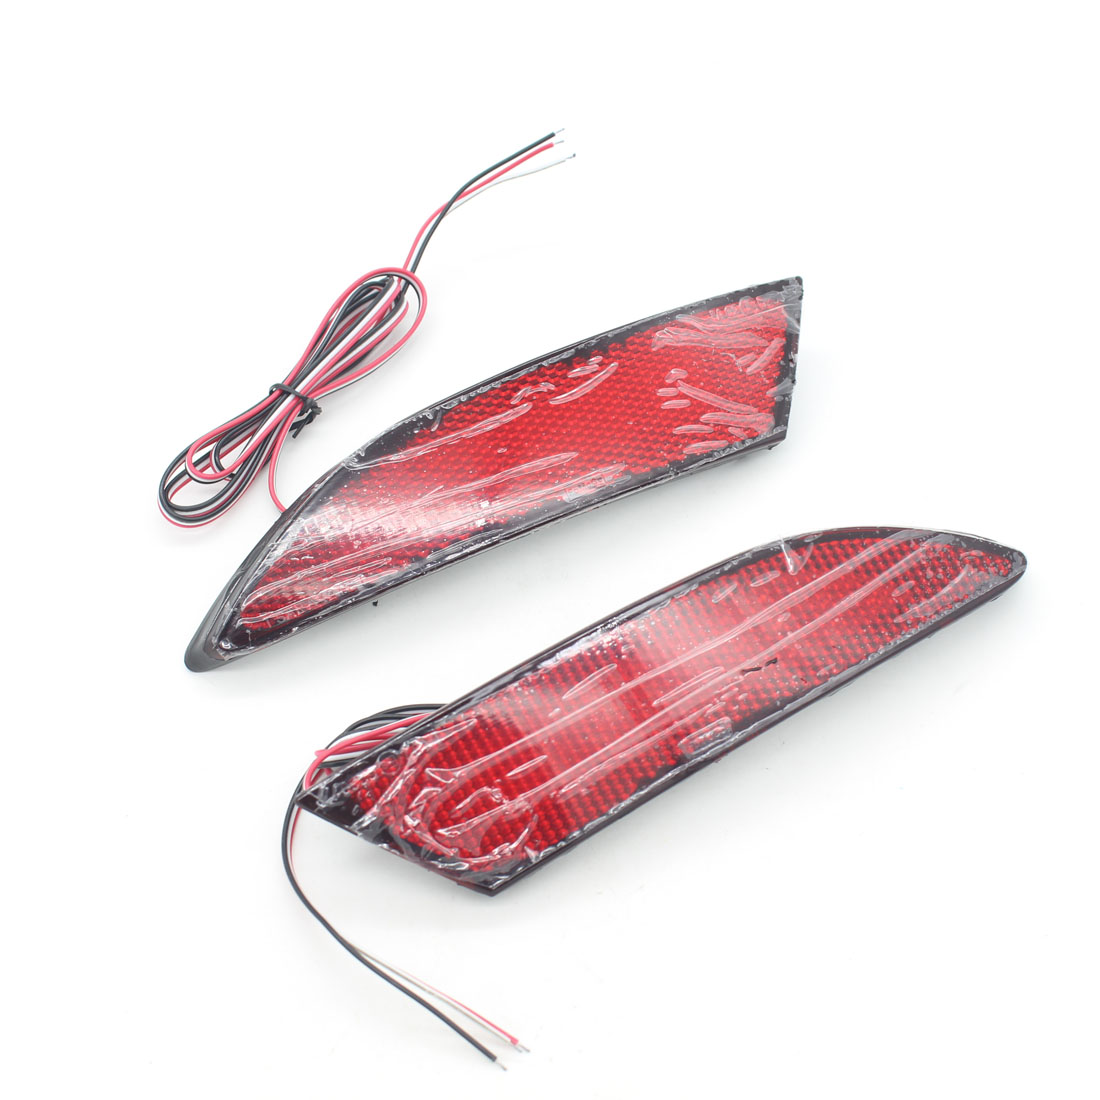 Dongzhen Fit For Focus 2012 Car Accessories LED Red Rear Bumper Reflectors Light Brake Parking Warning